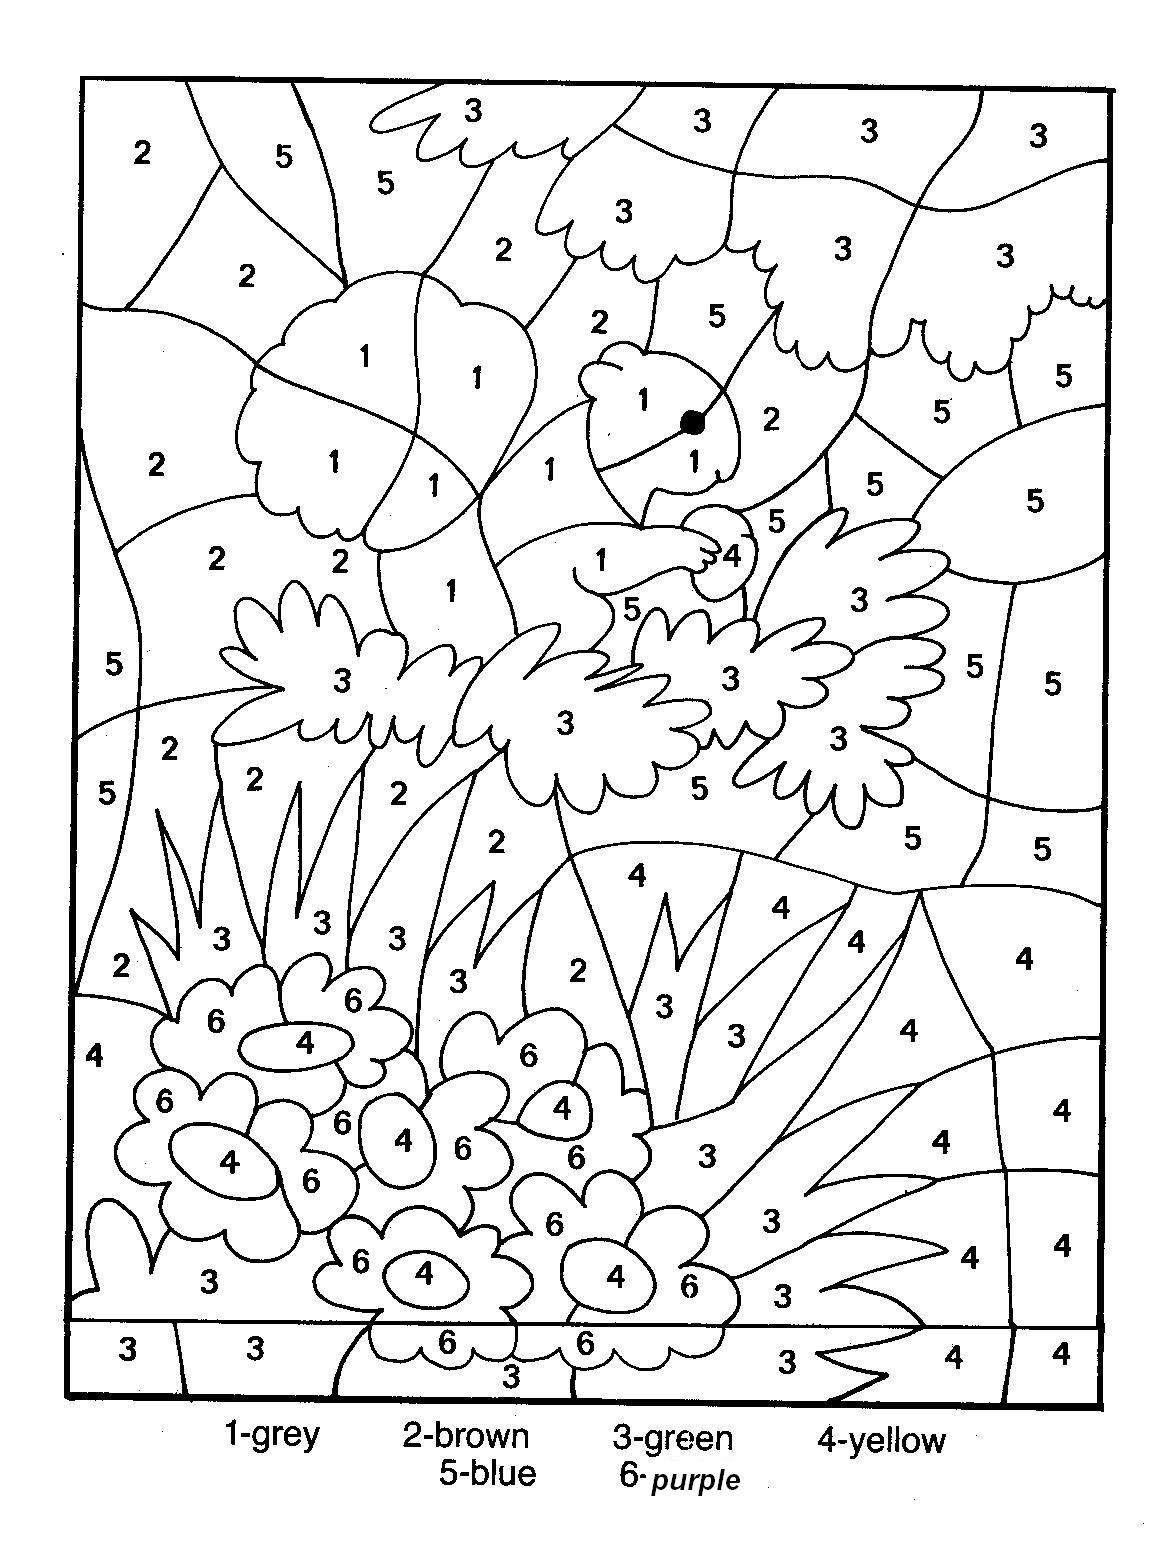 Coloring pages by numbers for adults - Printable Color By Number For Adults Color By Number Coloring Pages For Kids 5